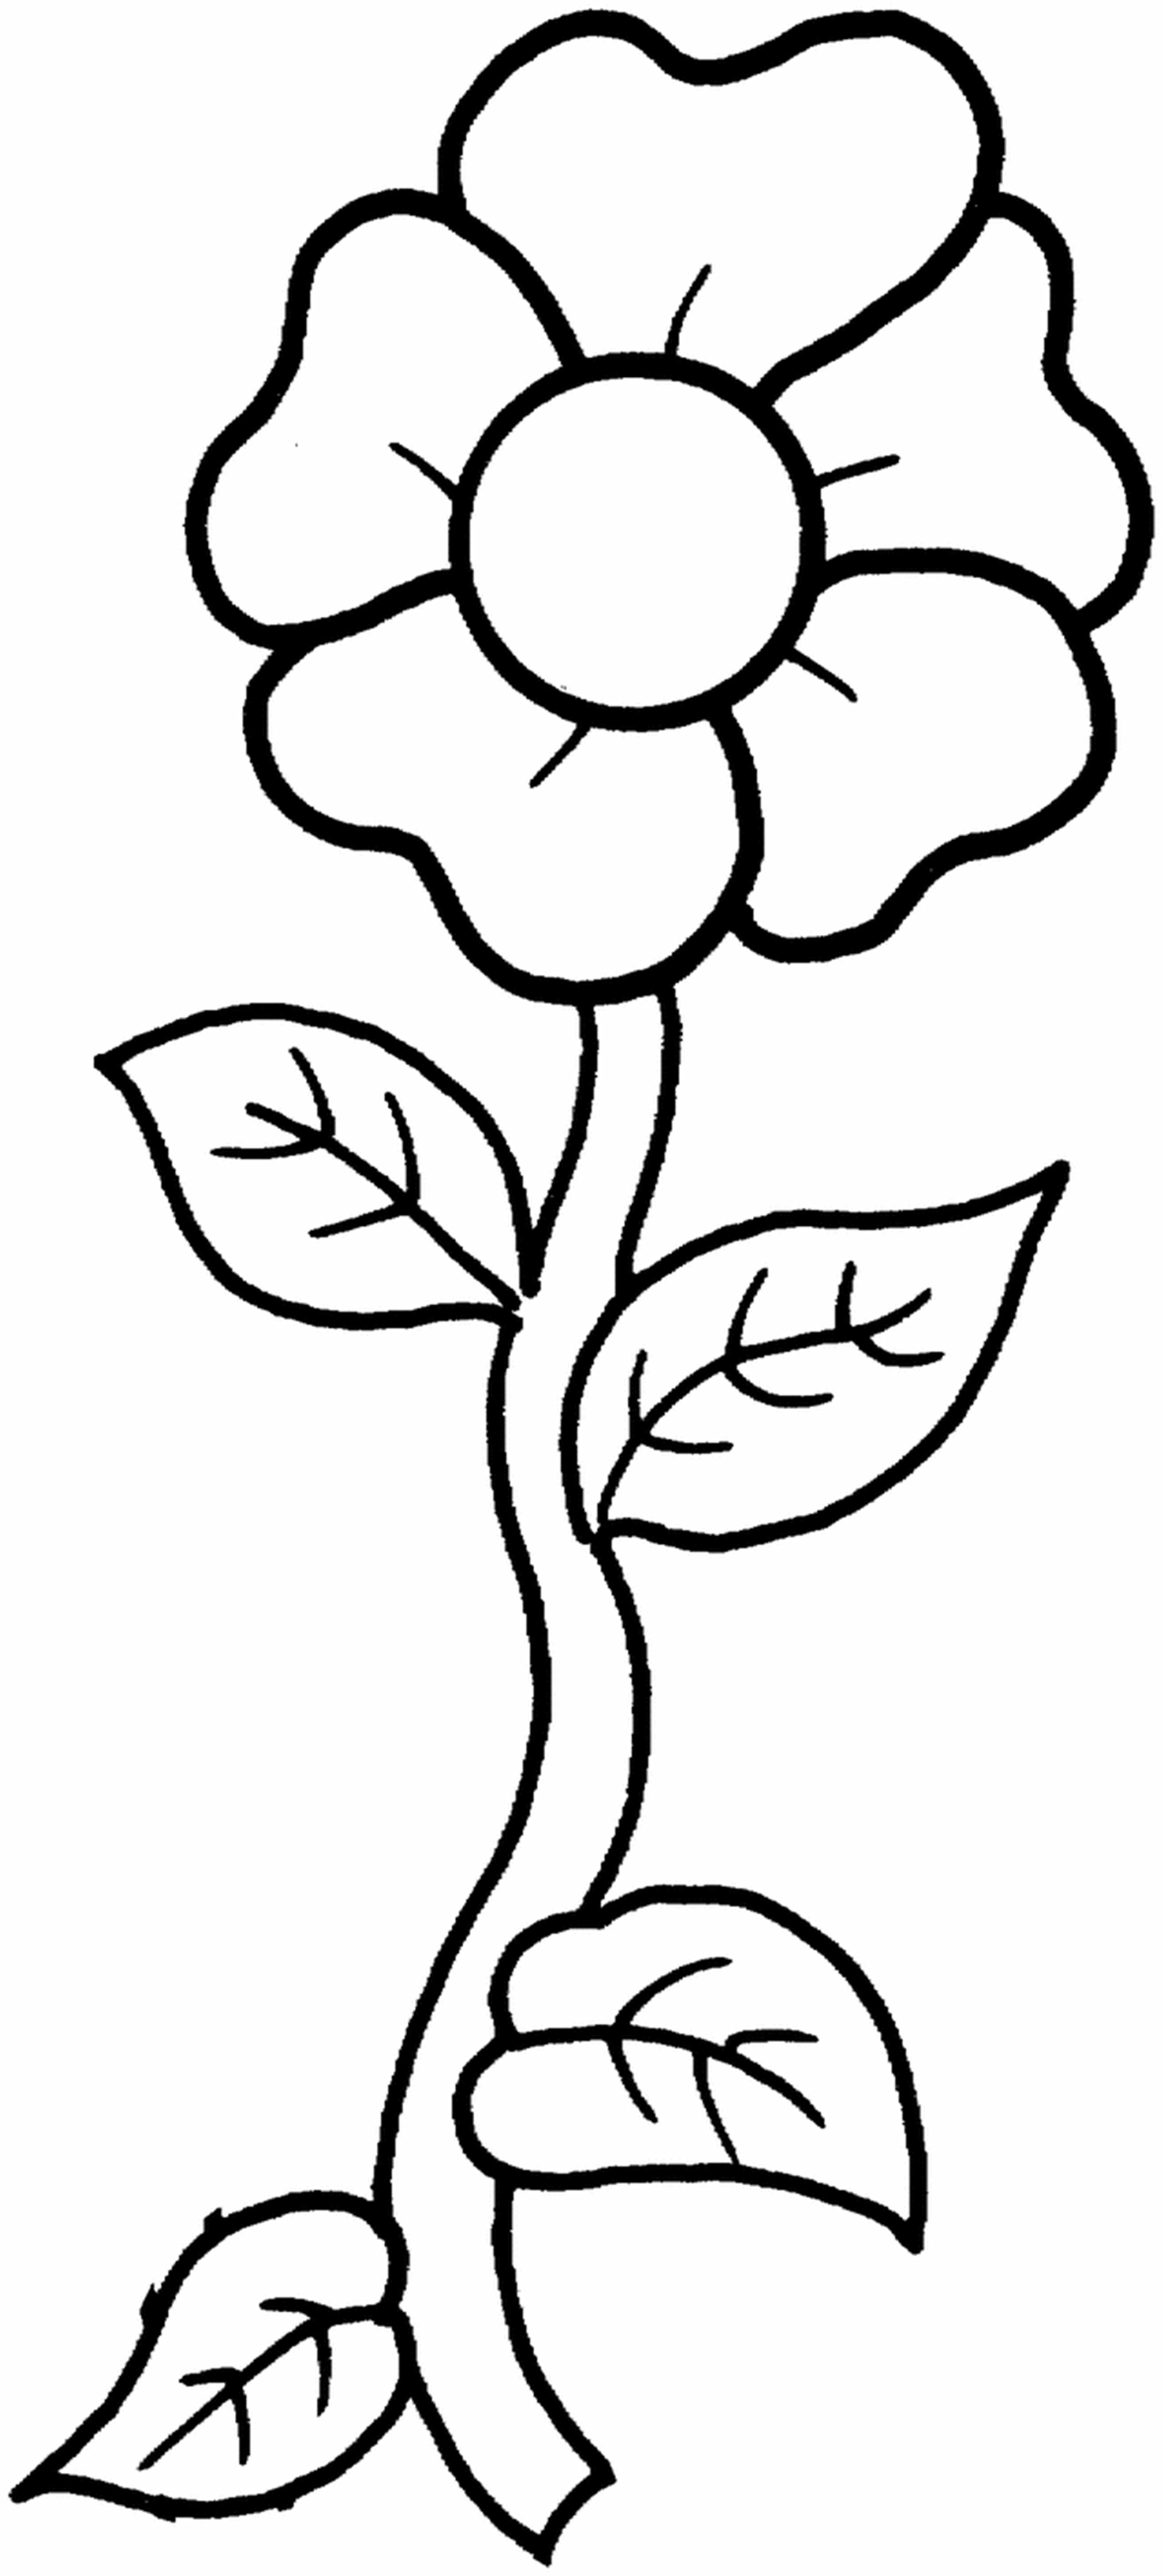 Best Free Coloring Sheets For Kids Printables  Free Printable Flower Coloring Pages For Kids Best